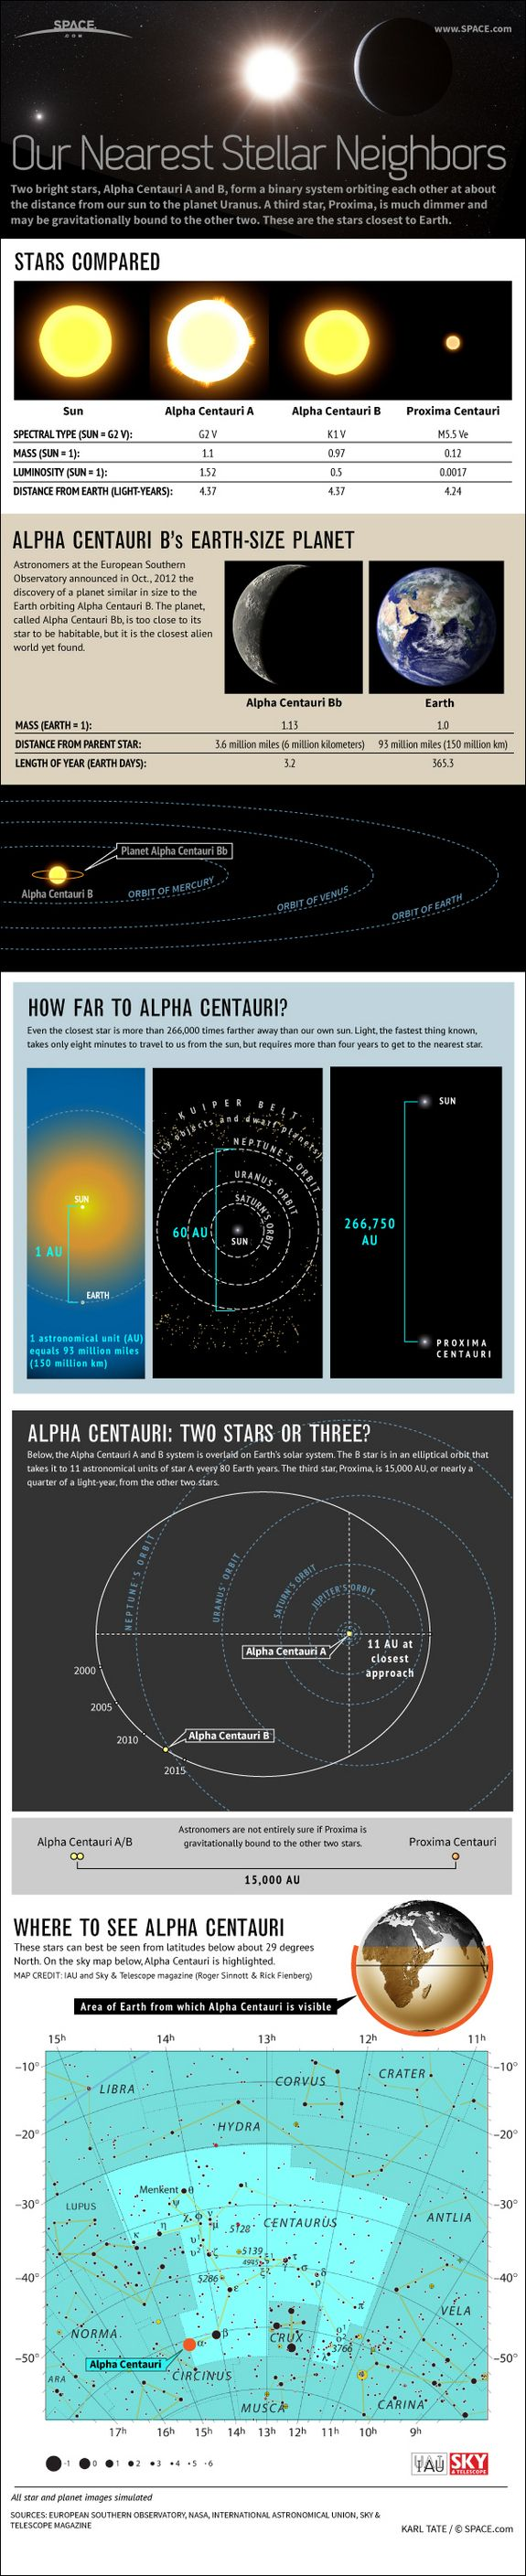 Alpha Centauri Stars & Planet Explained: Our Nearest Neighbors (Infographic)  by Karl Tate